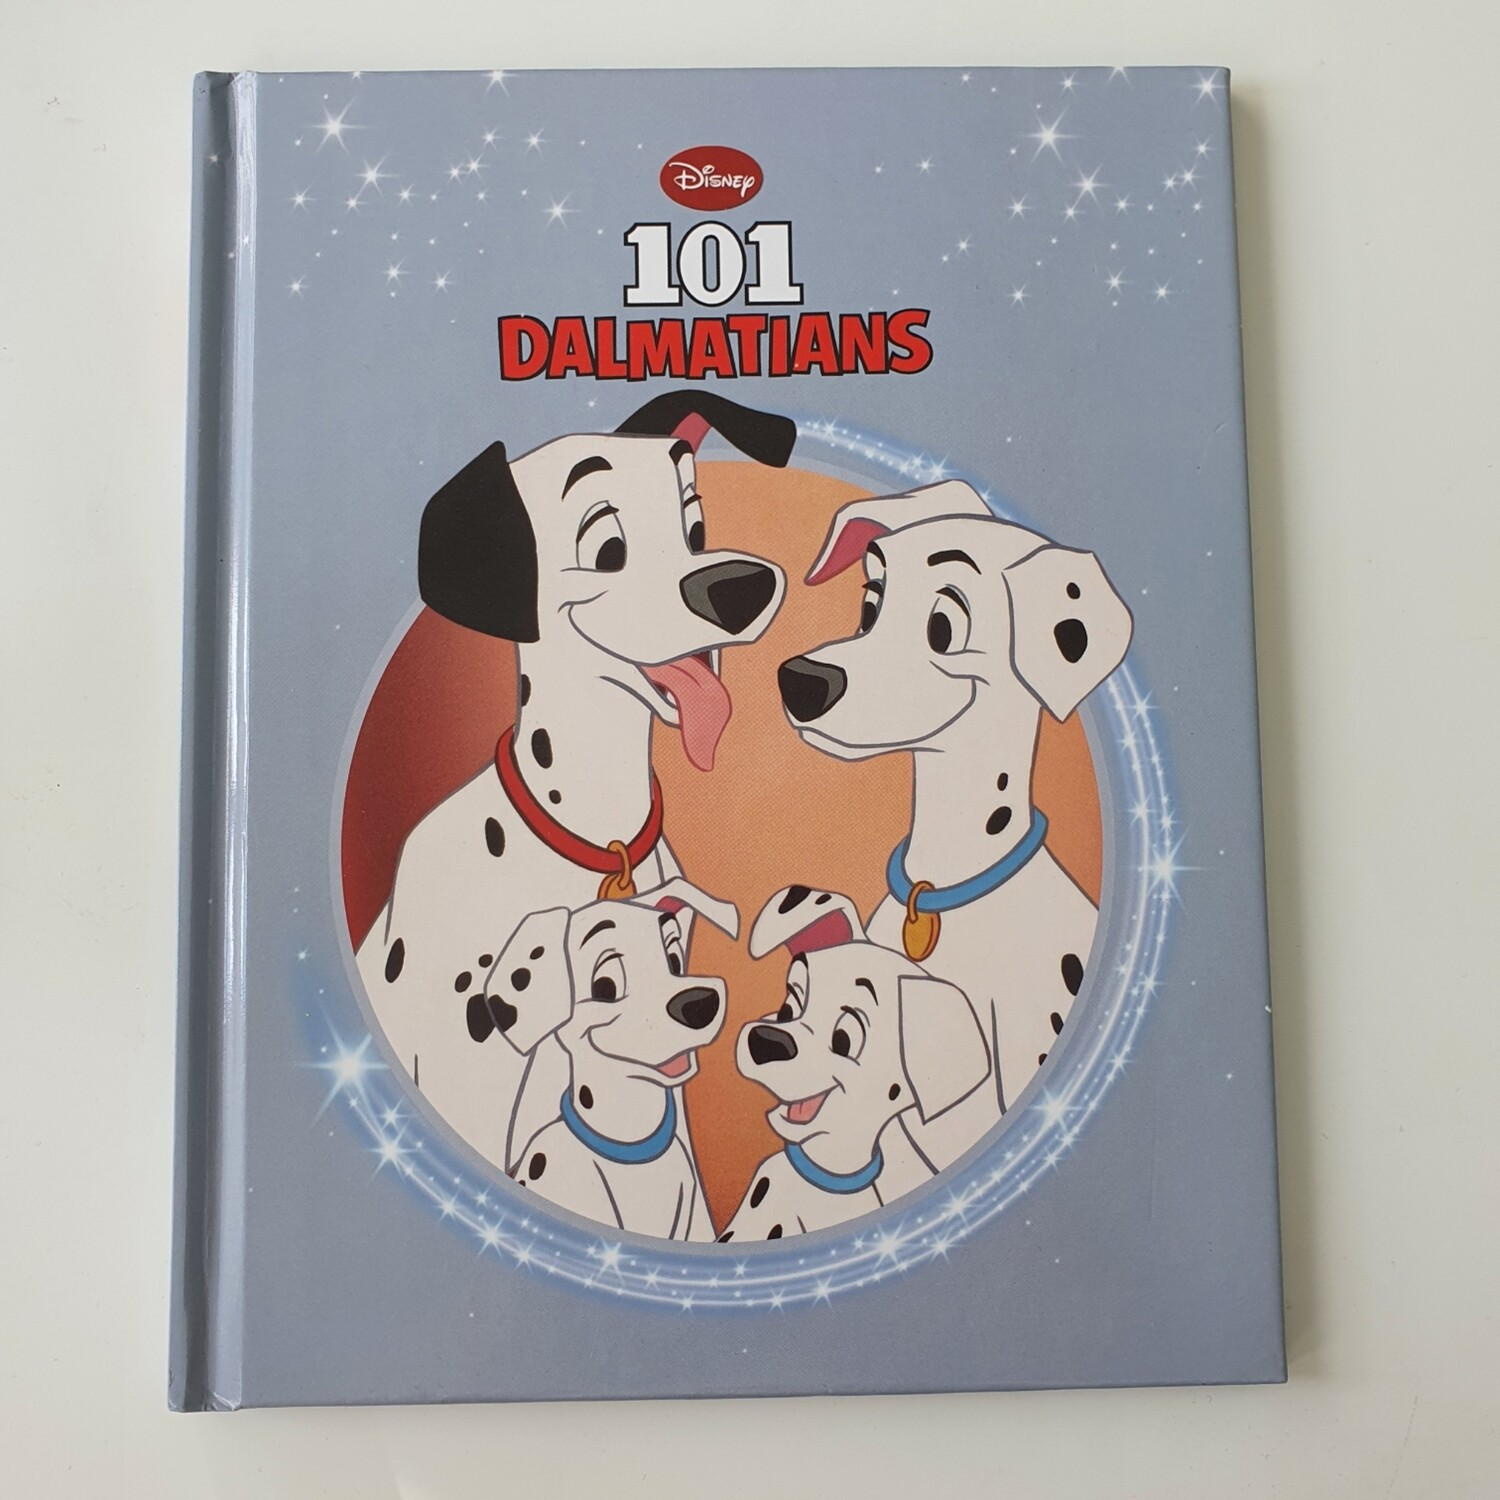 101 Dalmatians Notebook - no original book pages